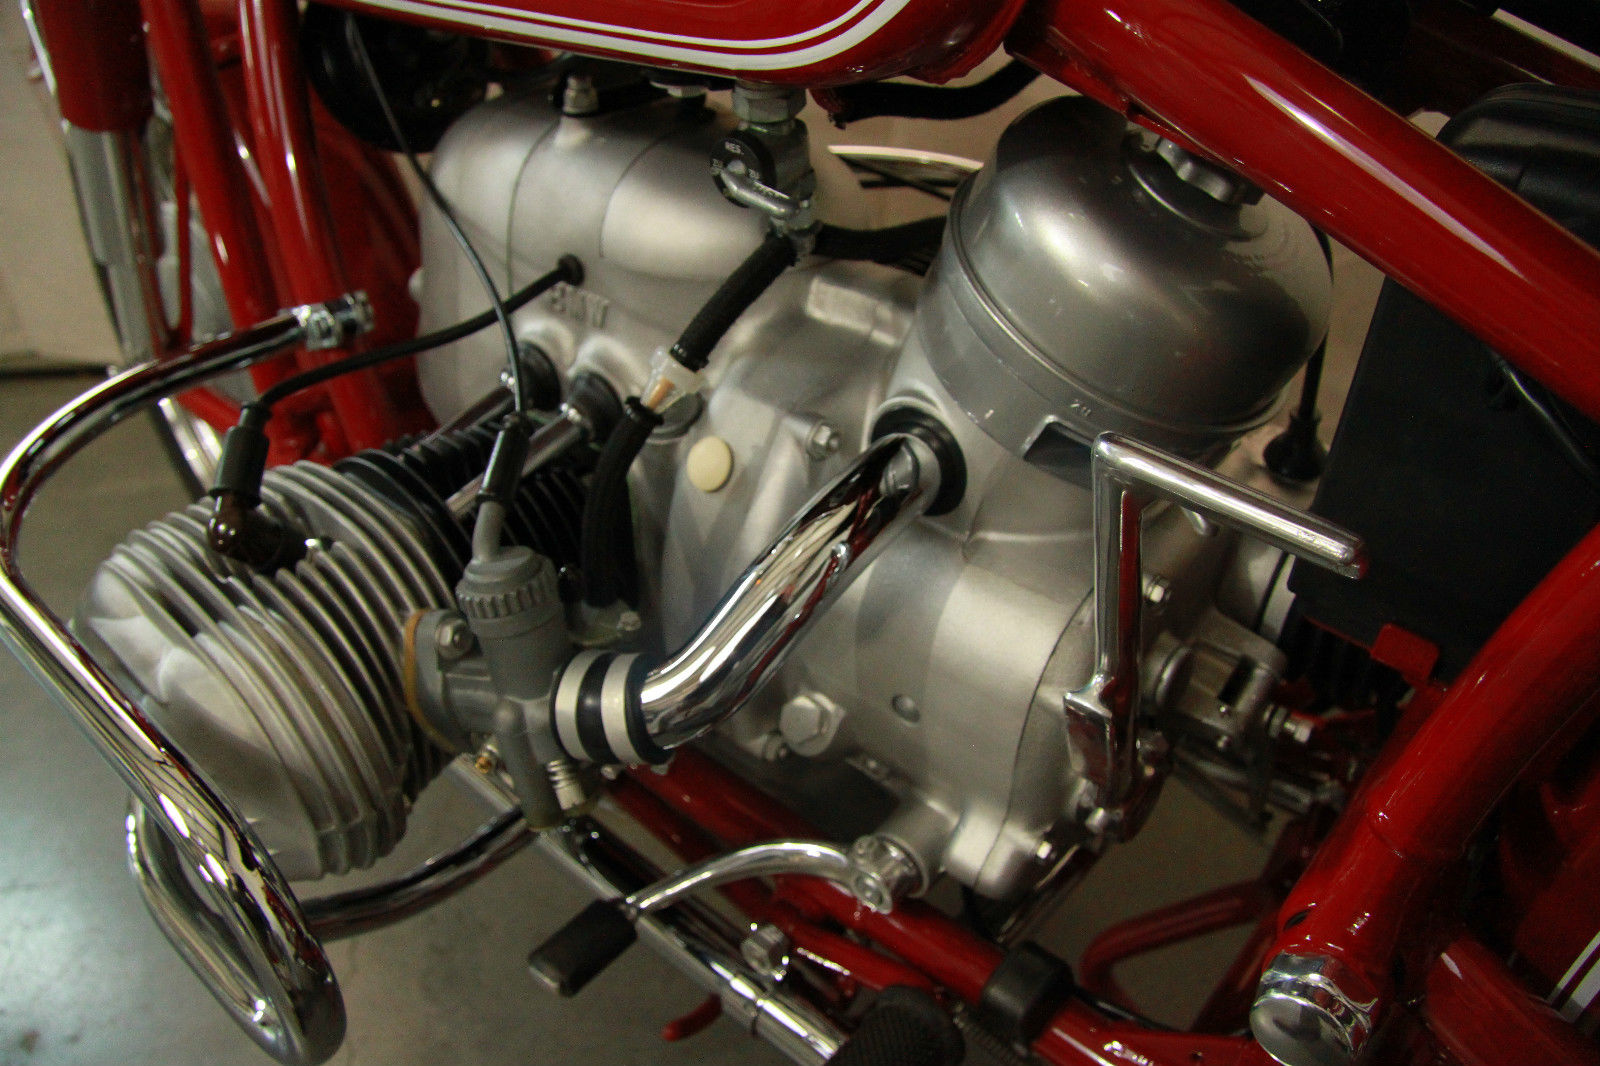 BMW R60/2 - 1963 - Air Intake Tube, Kick Start, Carburettor, Air Filter and Cylinder.